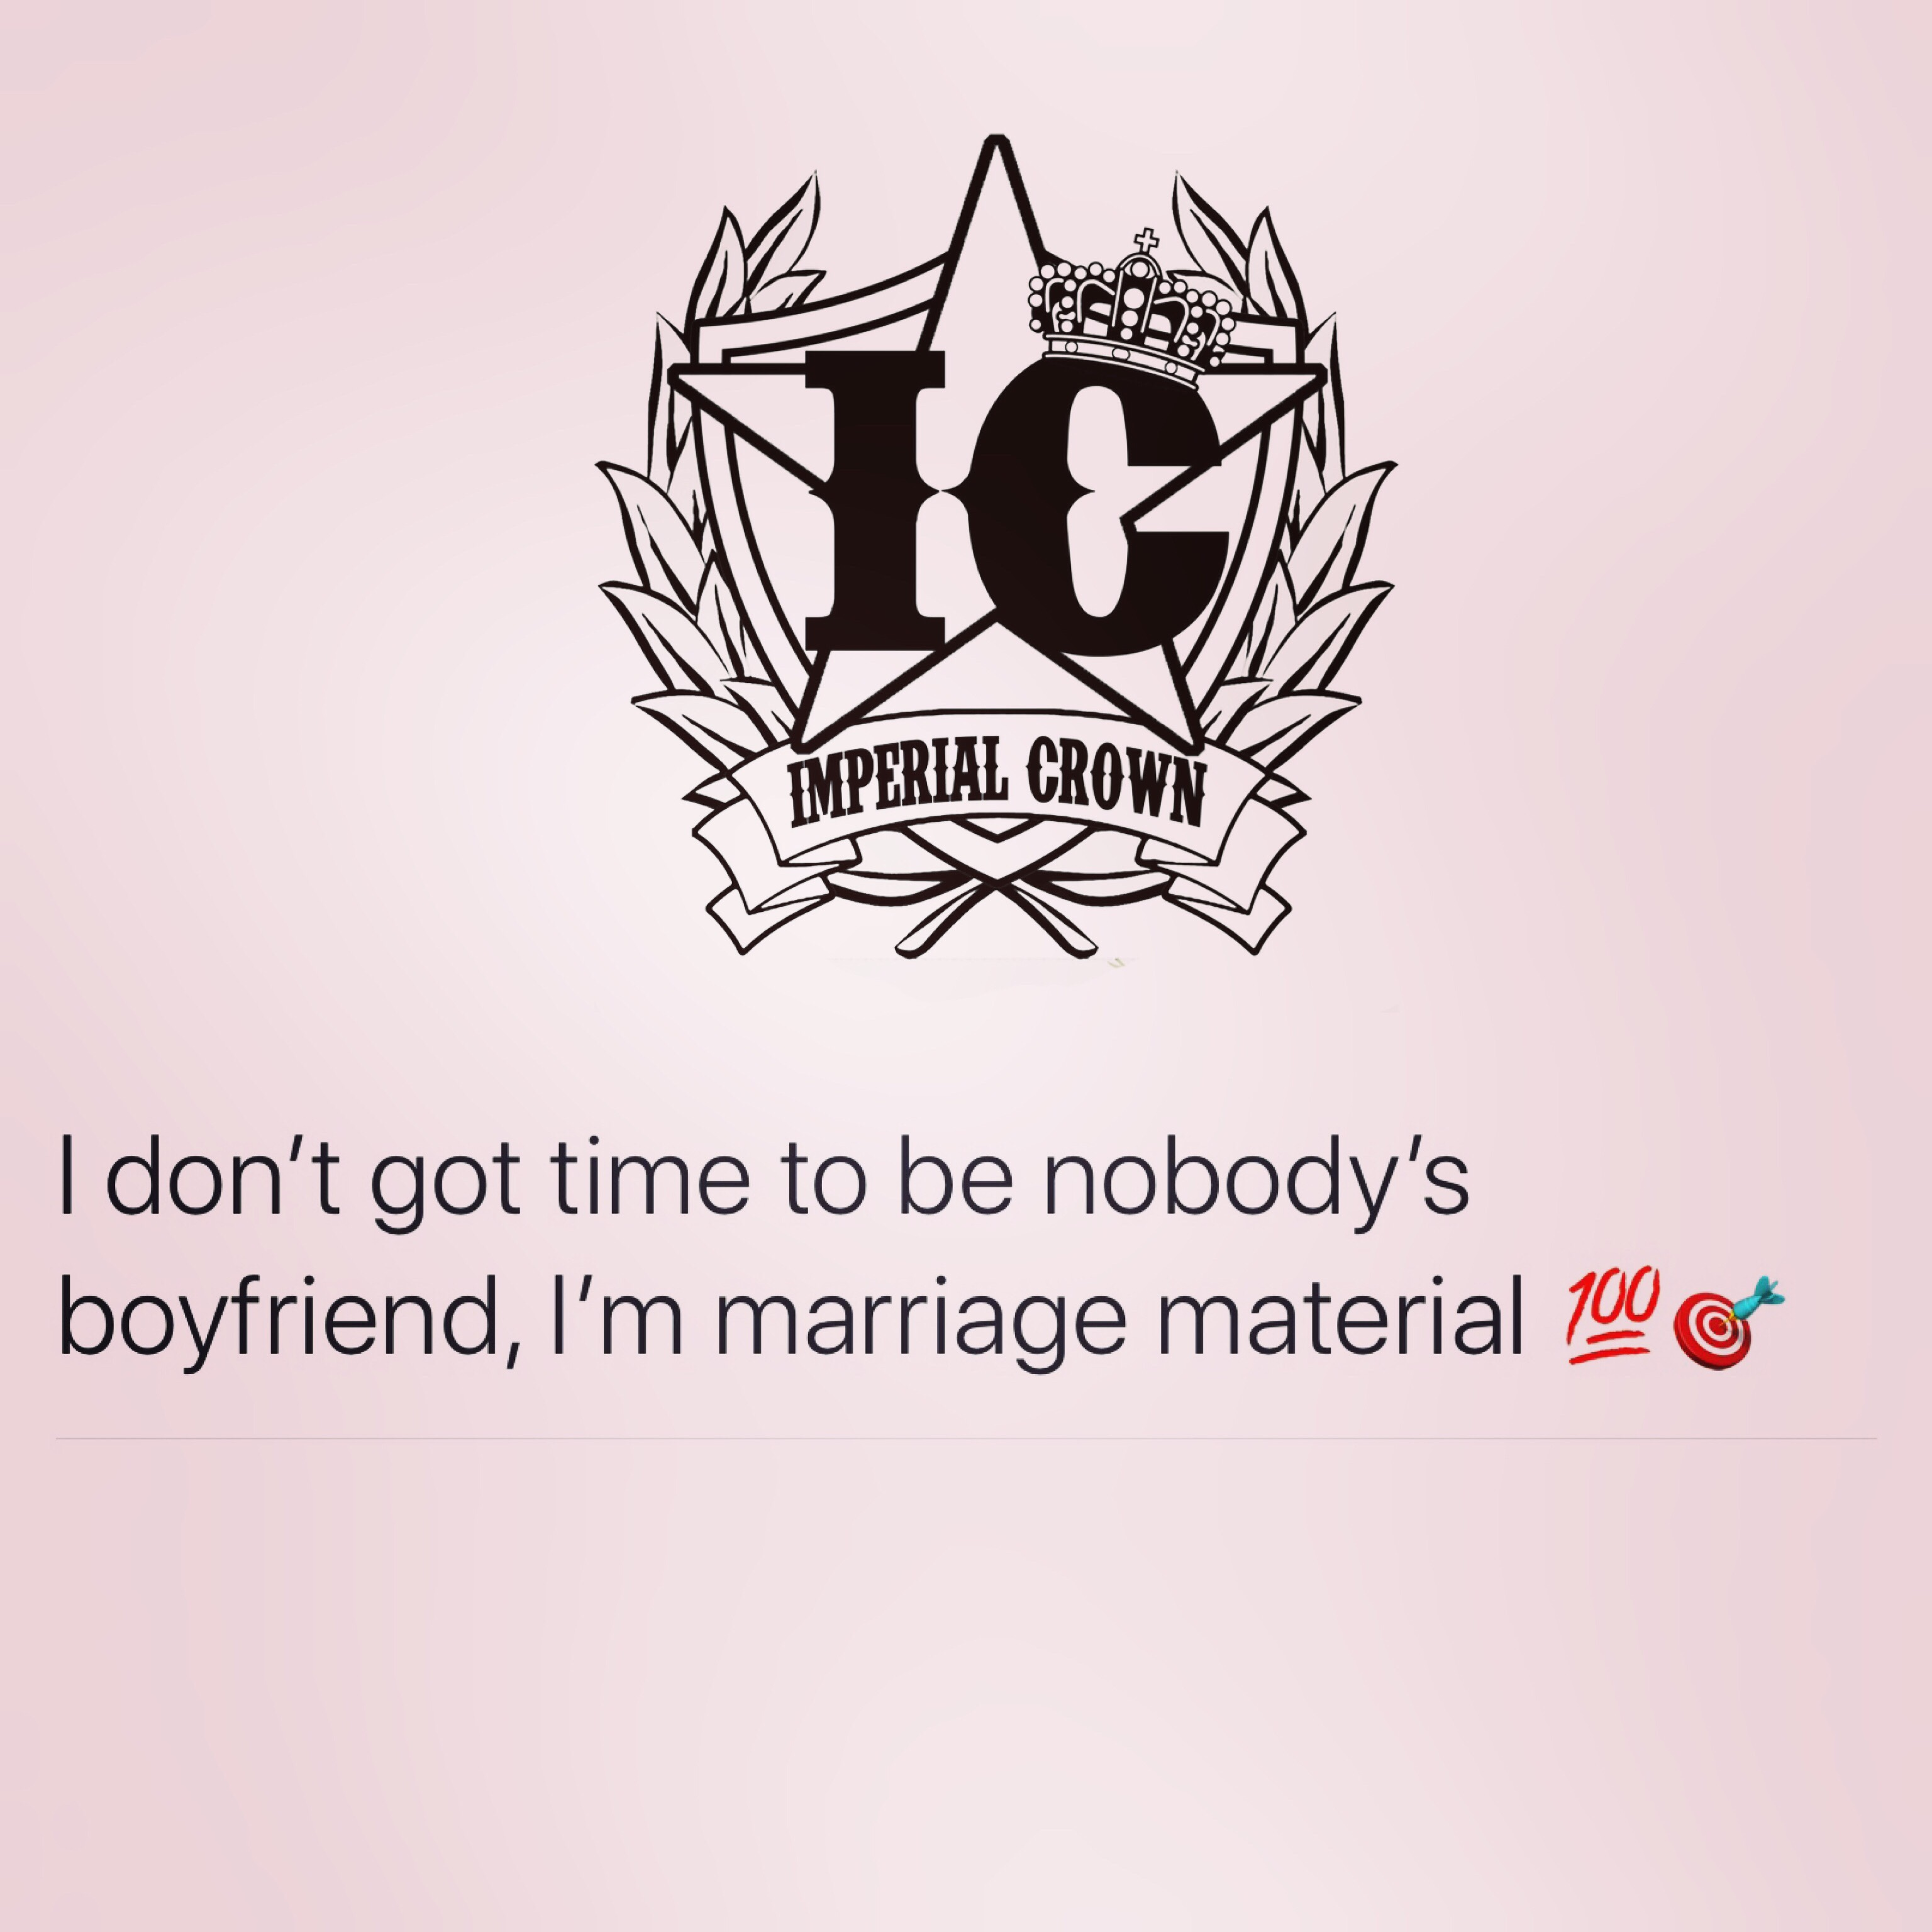 I don't got time to be nobody's boyfriend I'm marriage material